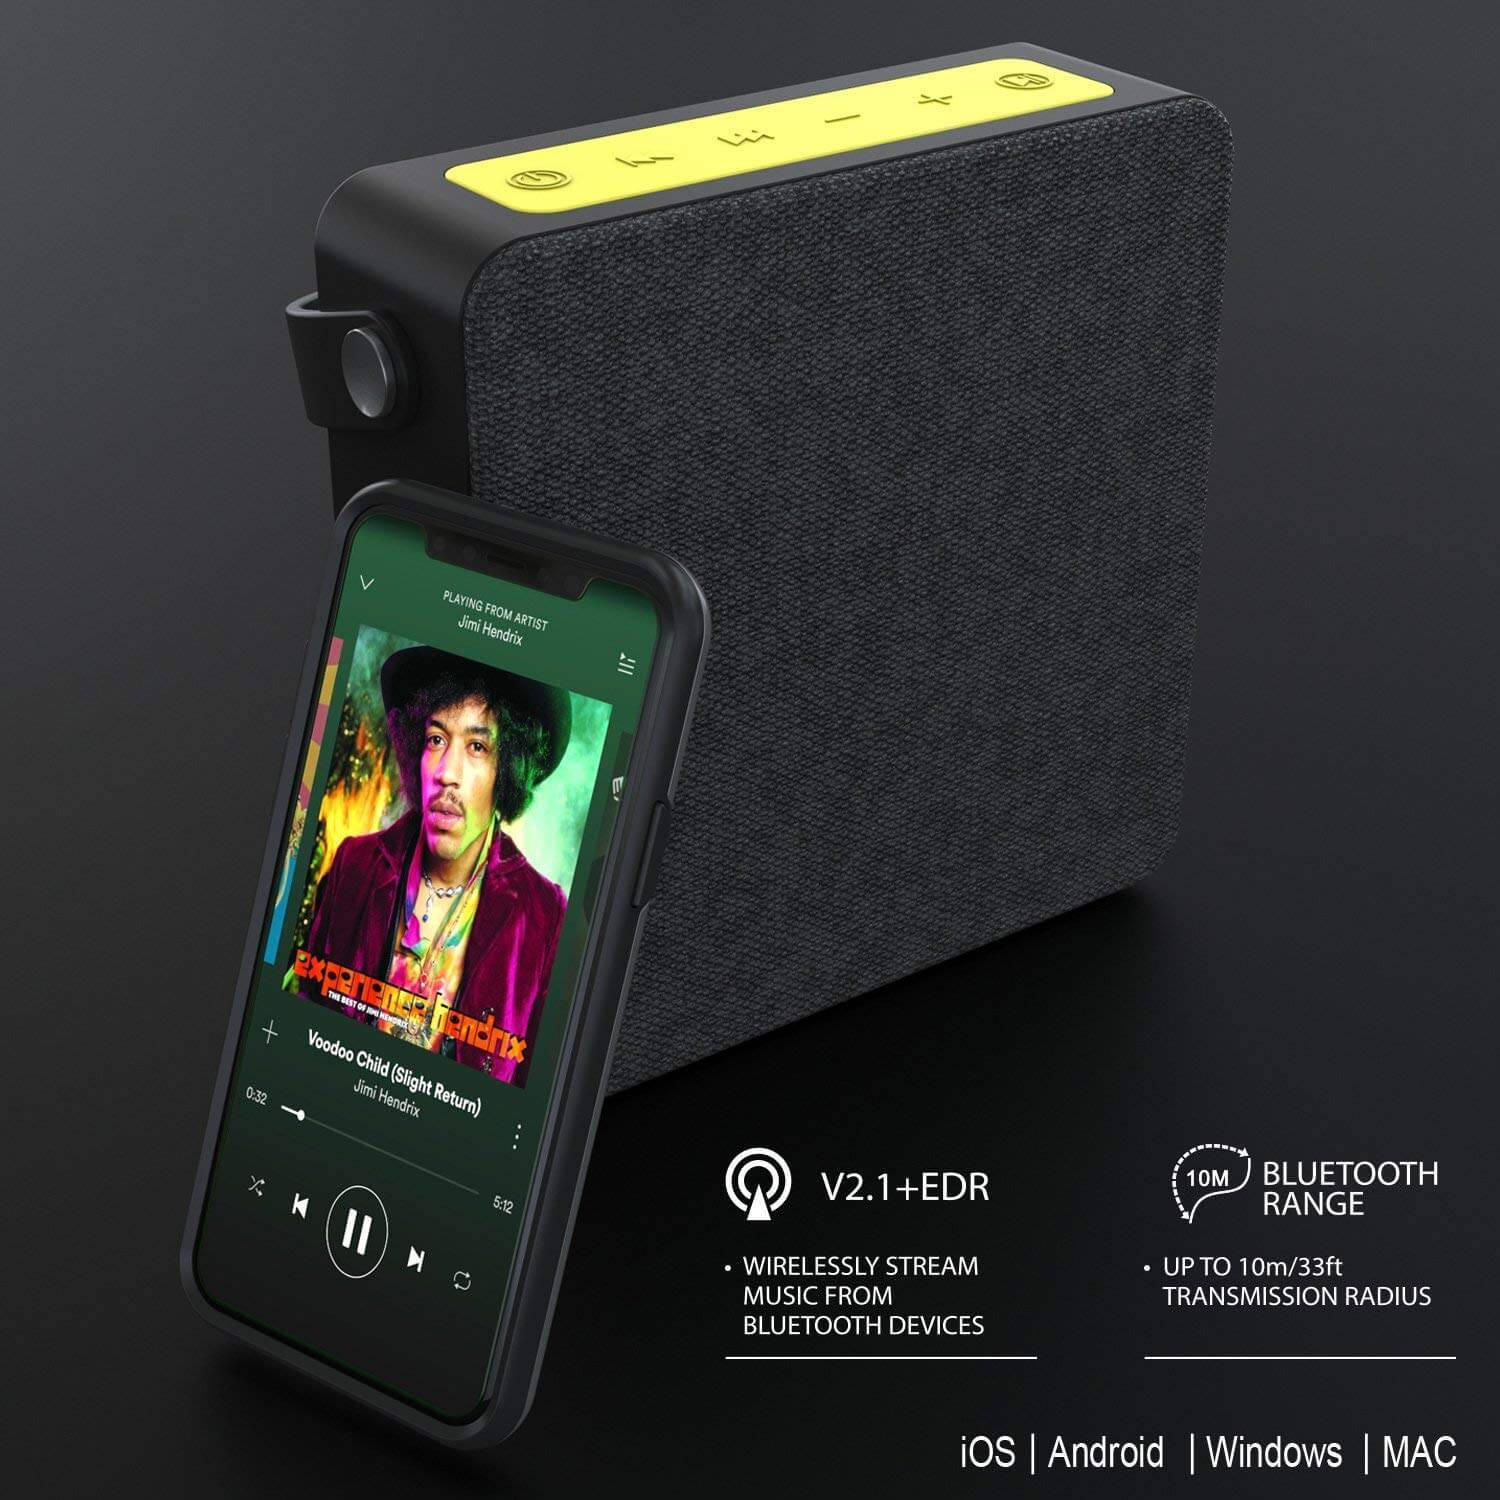 PUNKBOX Portable Wireless Bluetooth Speaker, Loud & Powerful for iPhone/Android [black] - PunkCase NZ